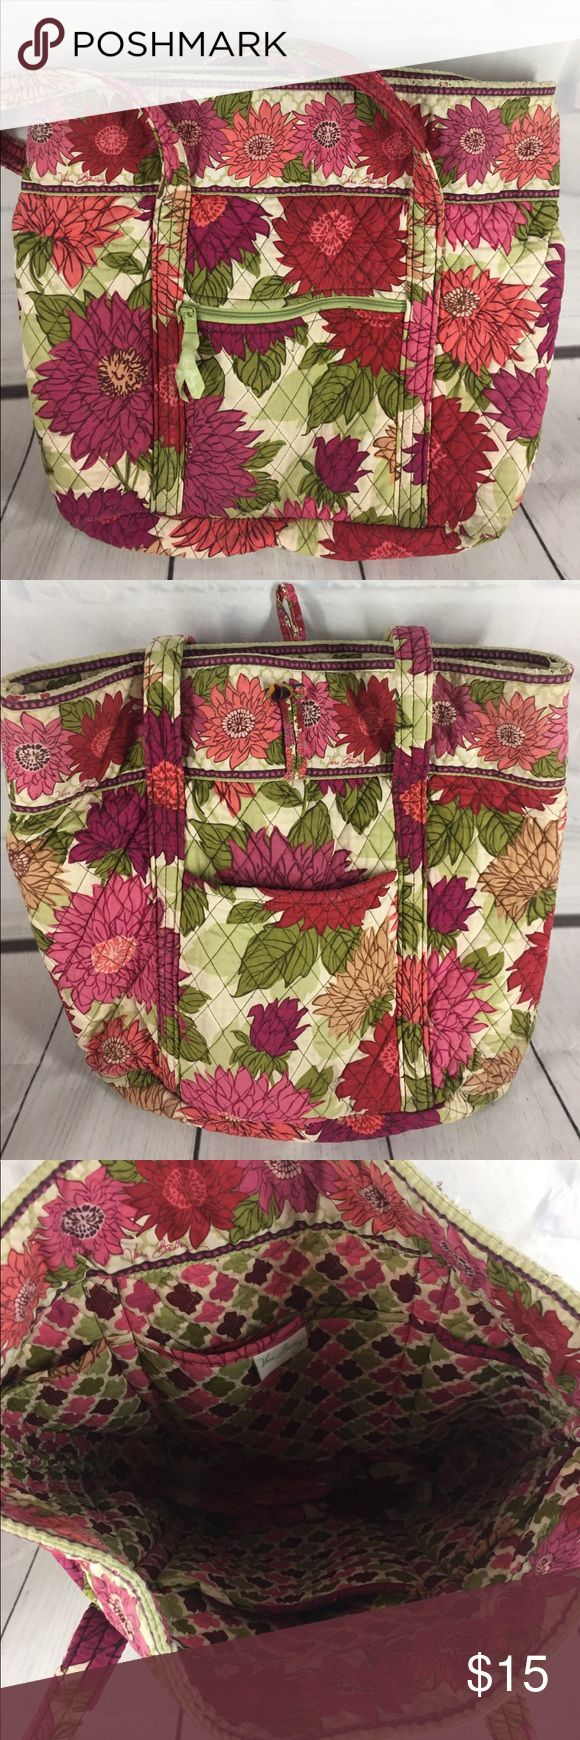 Vera Bradley tote bag Great condition but the top of the straps are frayed a bit and the pic shows it. The strap measures 12 inches, the width of bag is 17 inches and the height is 15 inches. There is a front pocket on both sides and 6 pockets inside. Vera Bradley Bags Totes